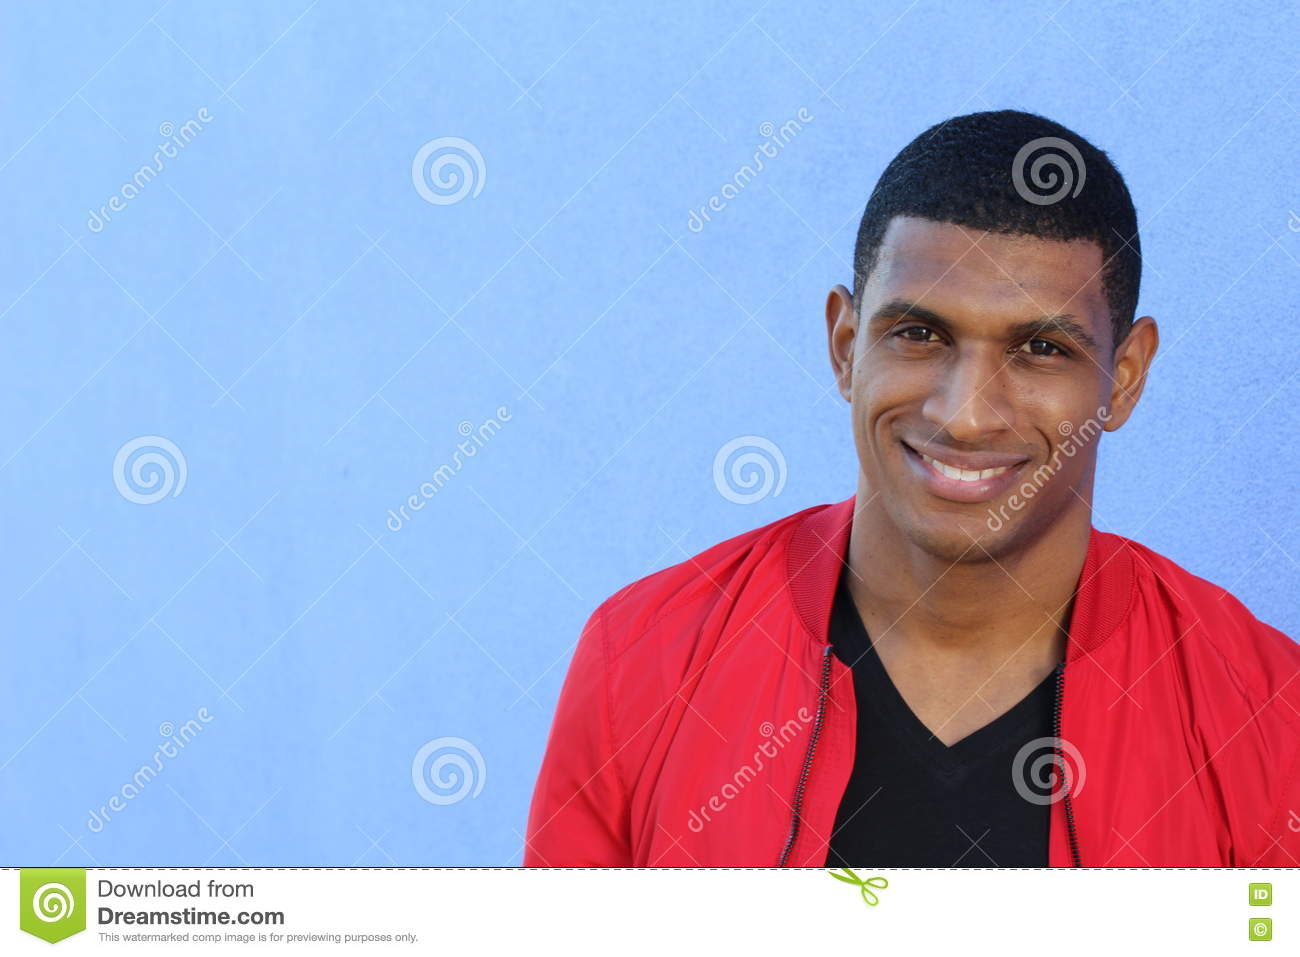 Horizontal portrait of a handsome young african man smiling on blue background.